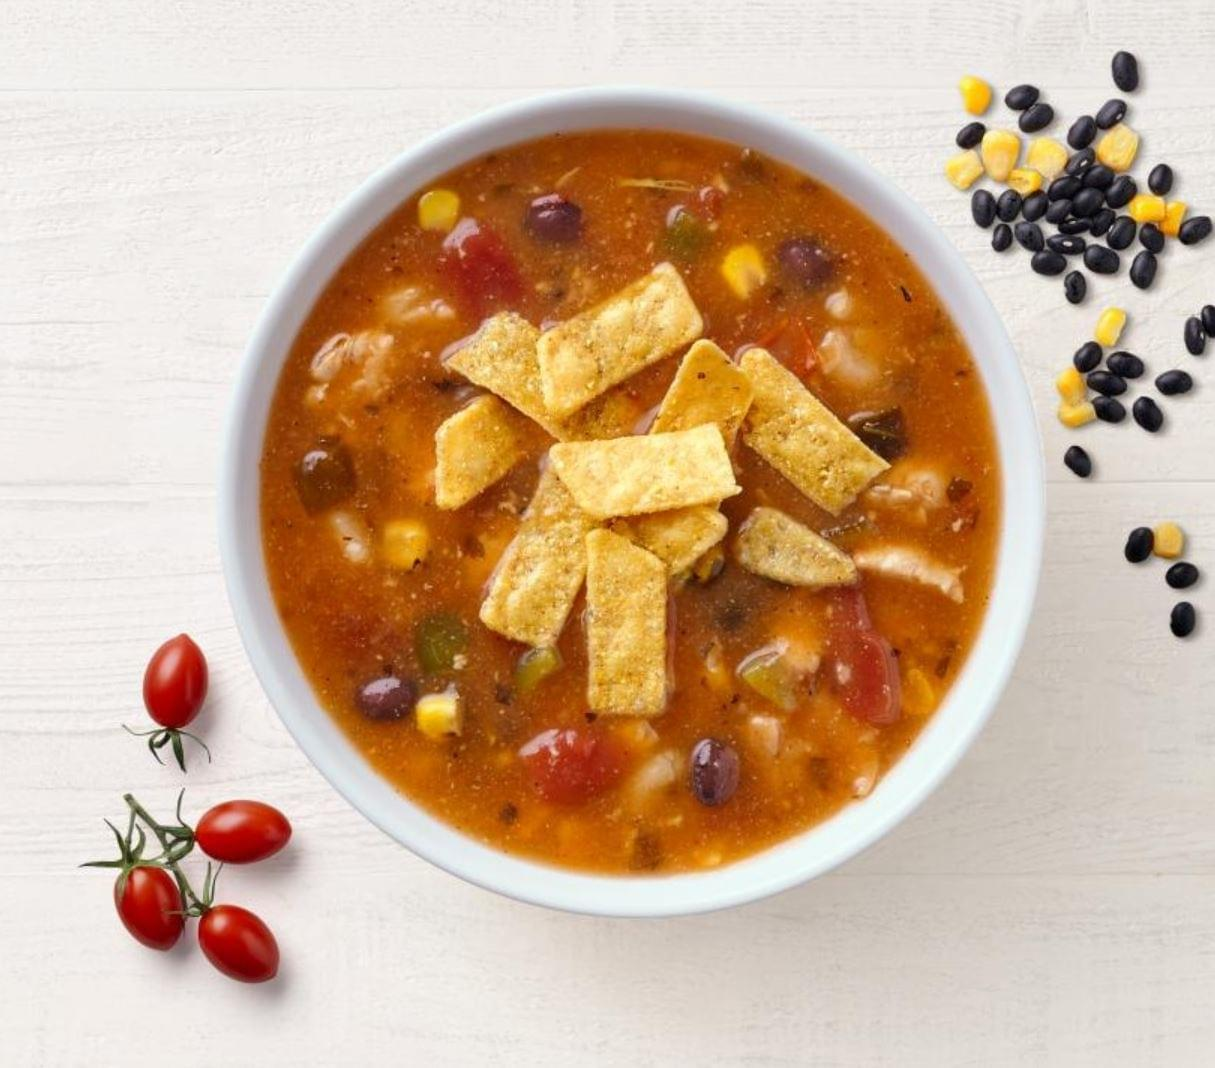 Panera Southwest Chicken Tortilla Soup Nutrition Facts